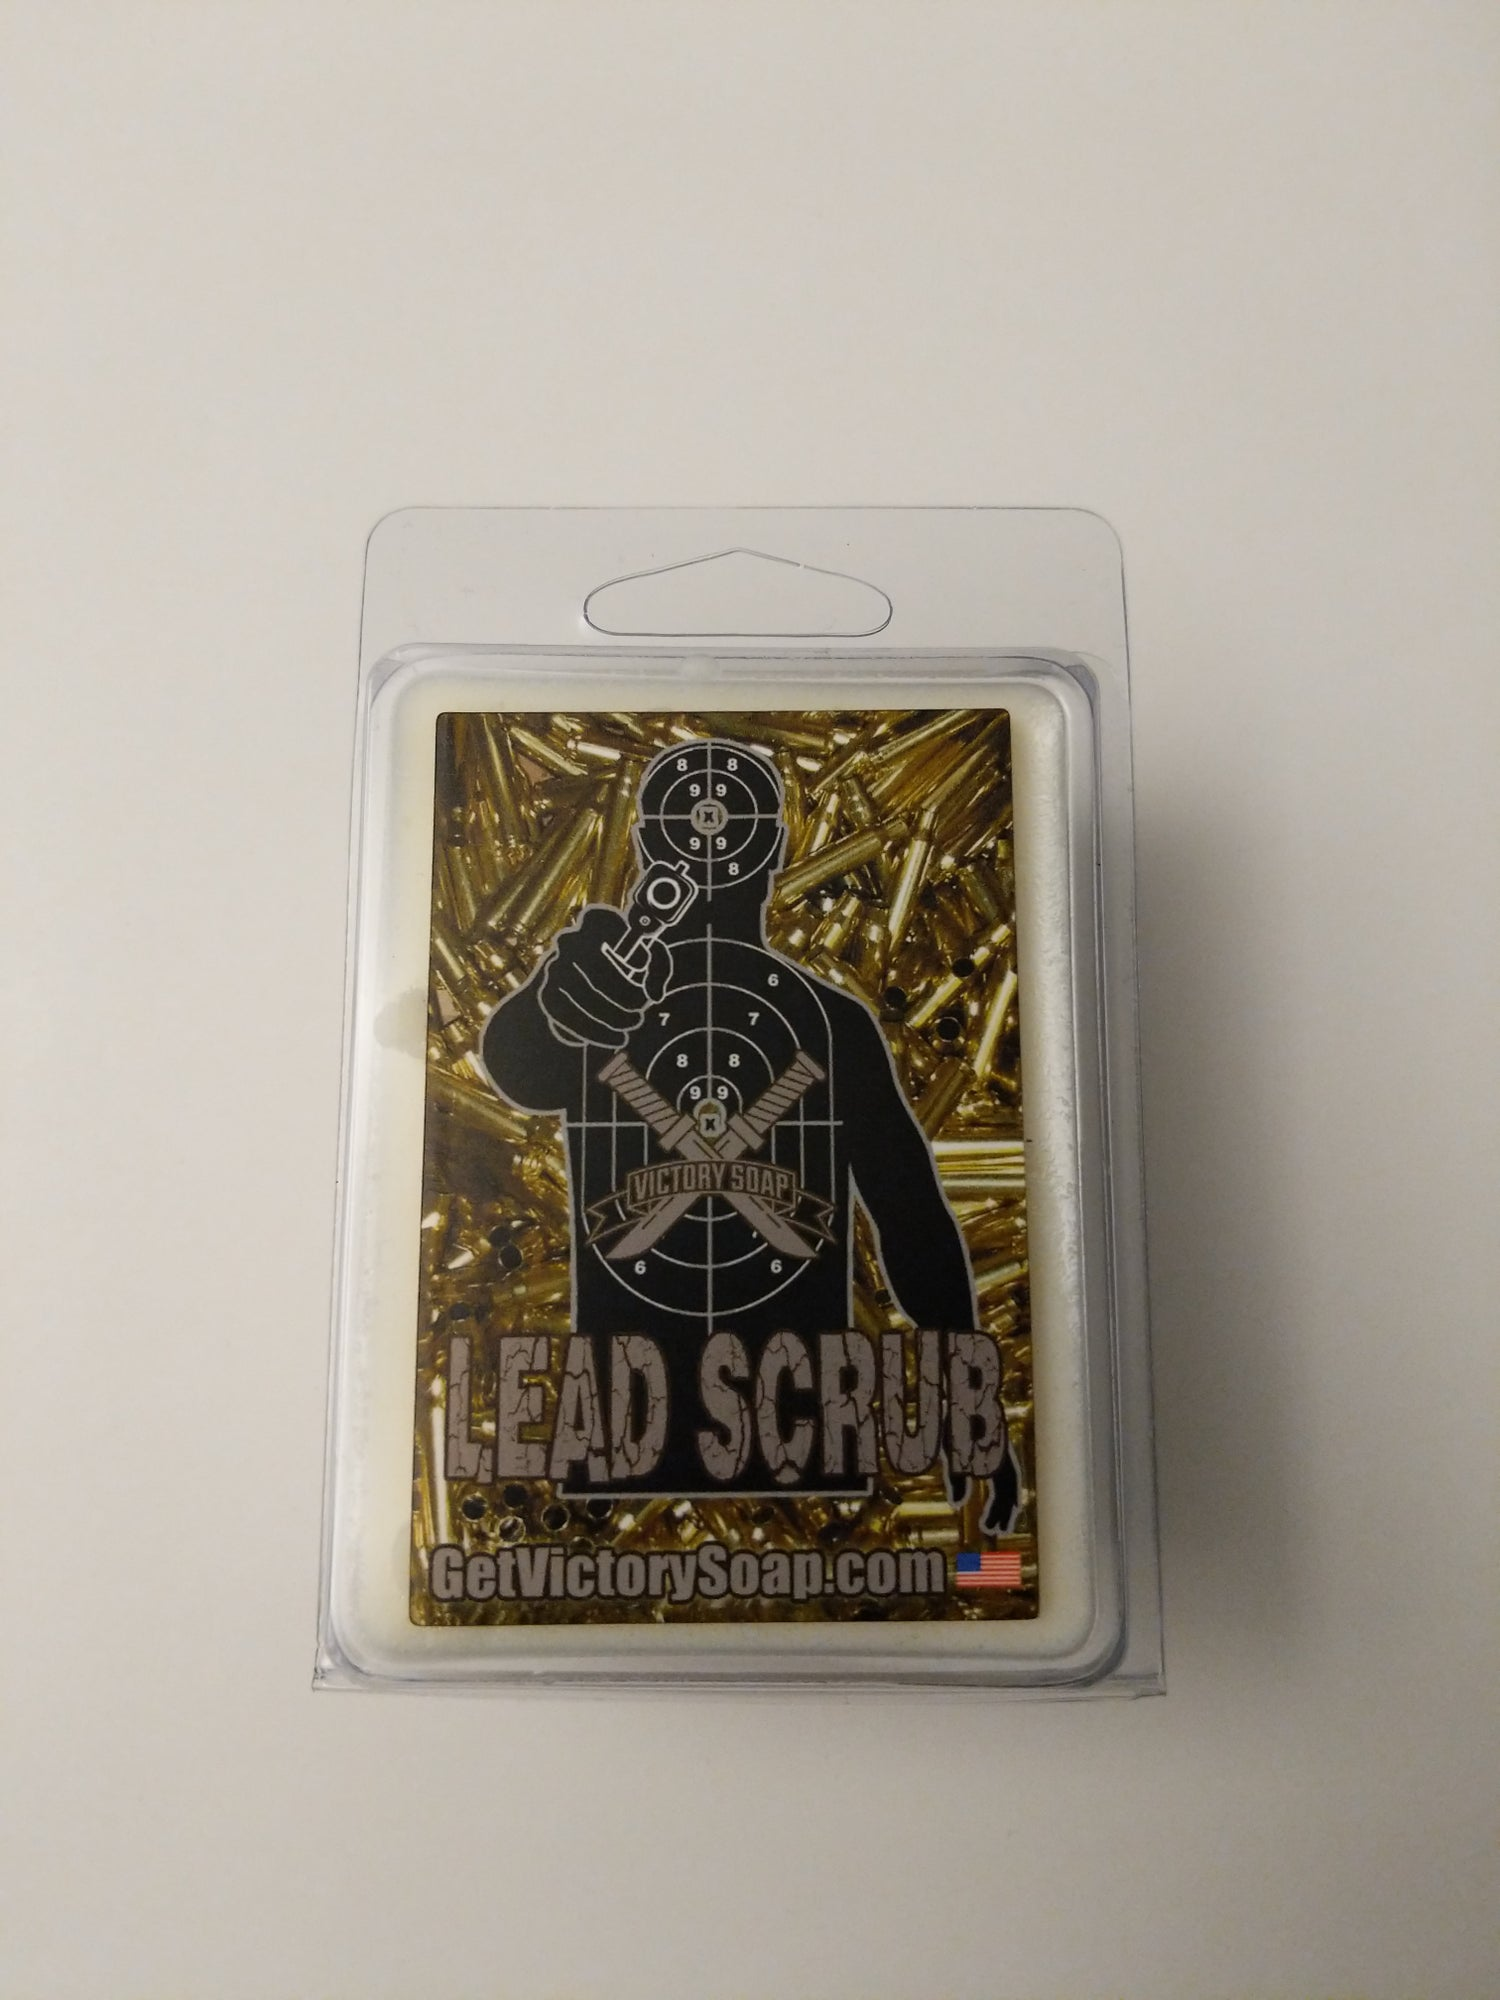 Image of Lead Scrub